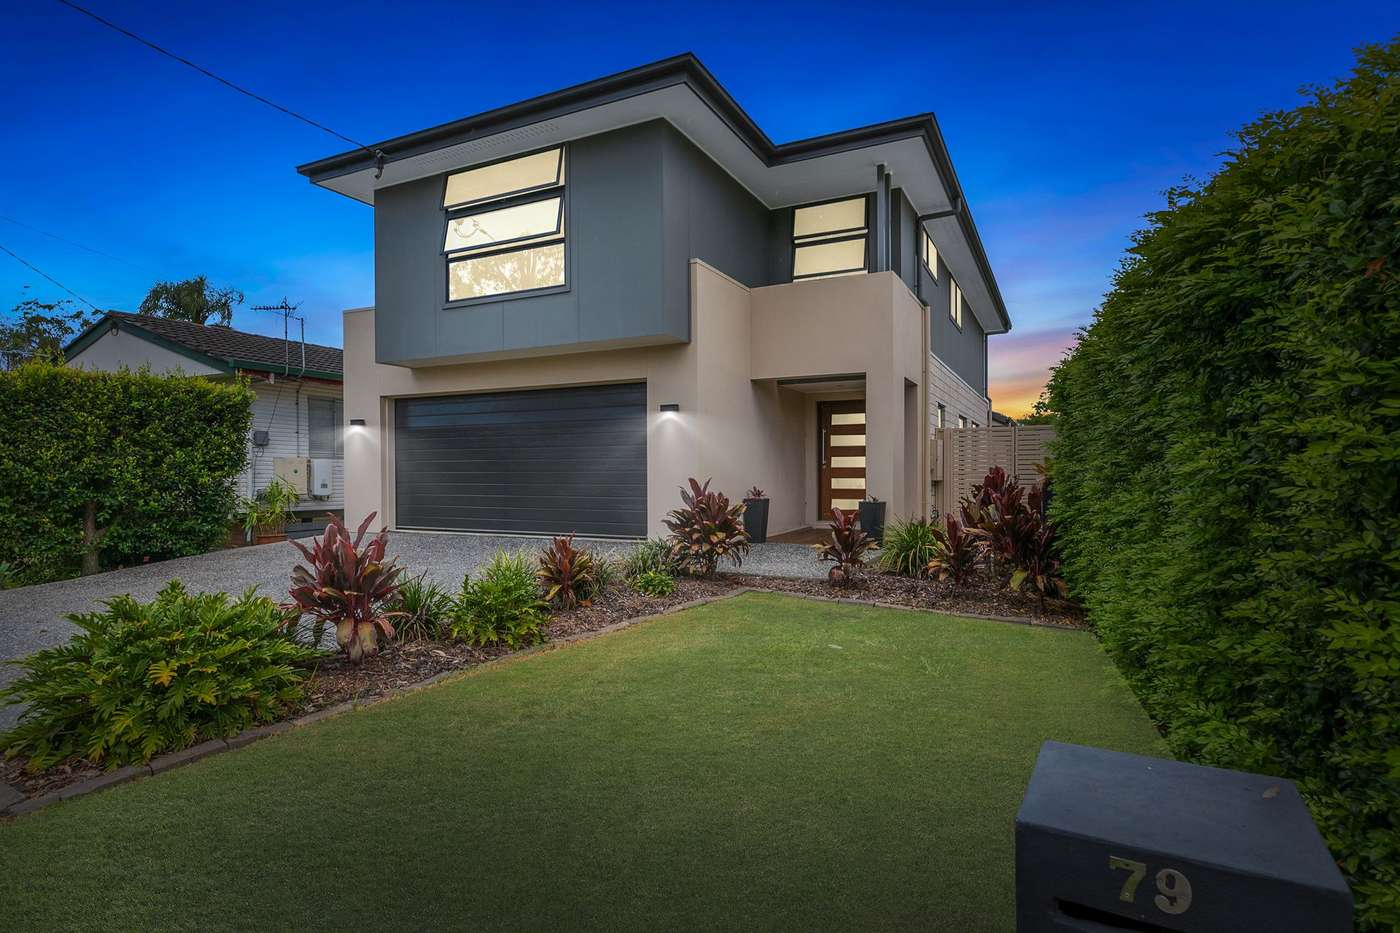 Main view of Homely house listing, 79 Thomas Street, Birkdale, QLD 4159